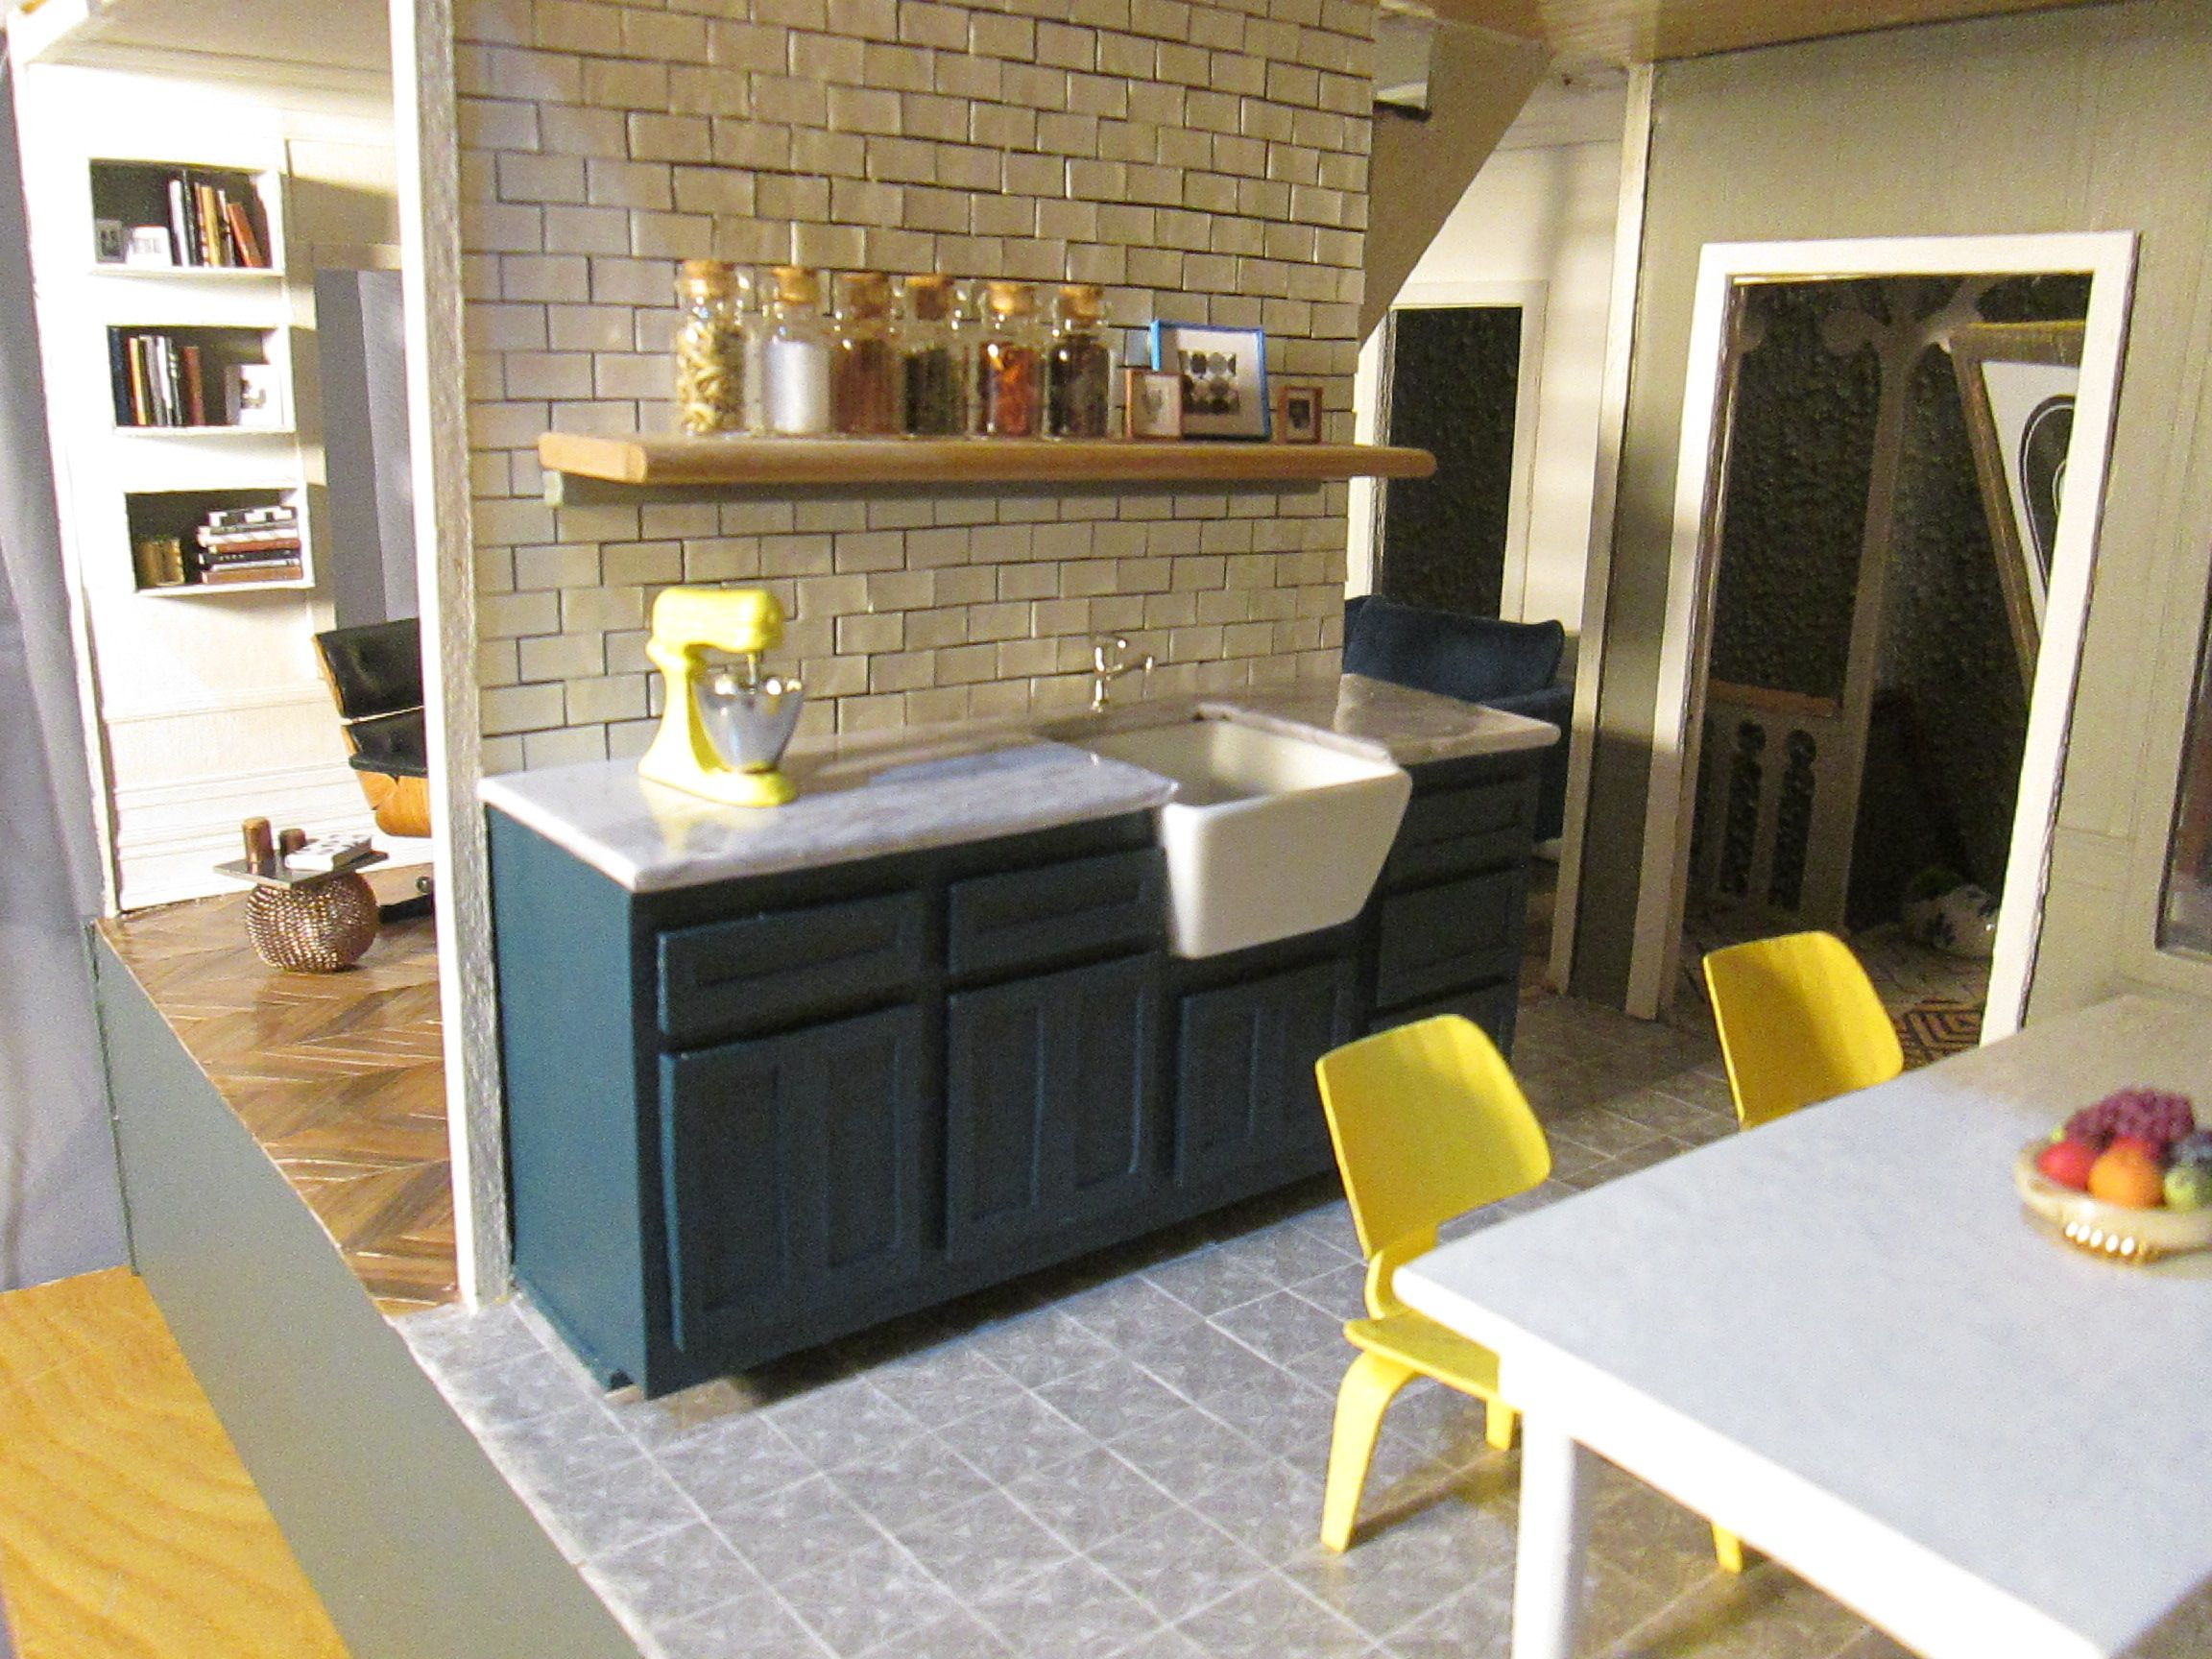 Miniature Dollhouse Kitchen With Navy Shaker Cabinets Farmhouse Sink Subway Tile And Open Shelving Miniature Kitchen Dollhouse Kitchen Kitchen Dining